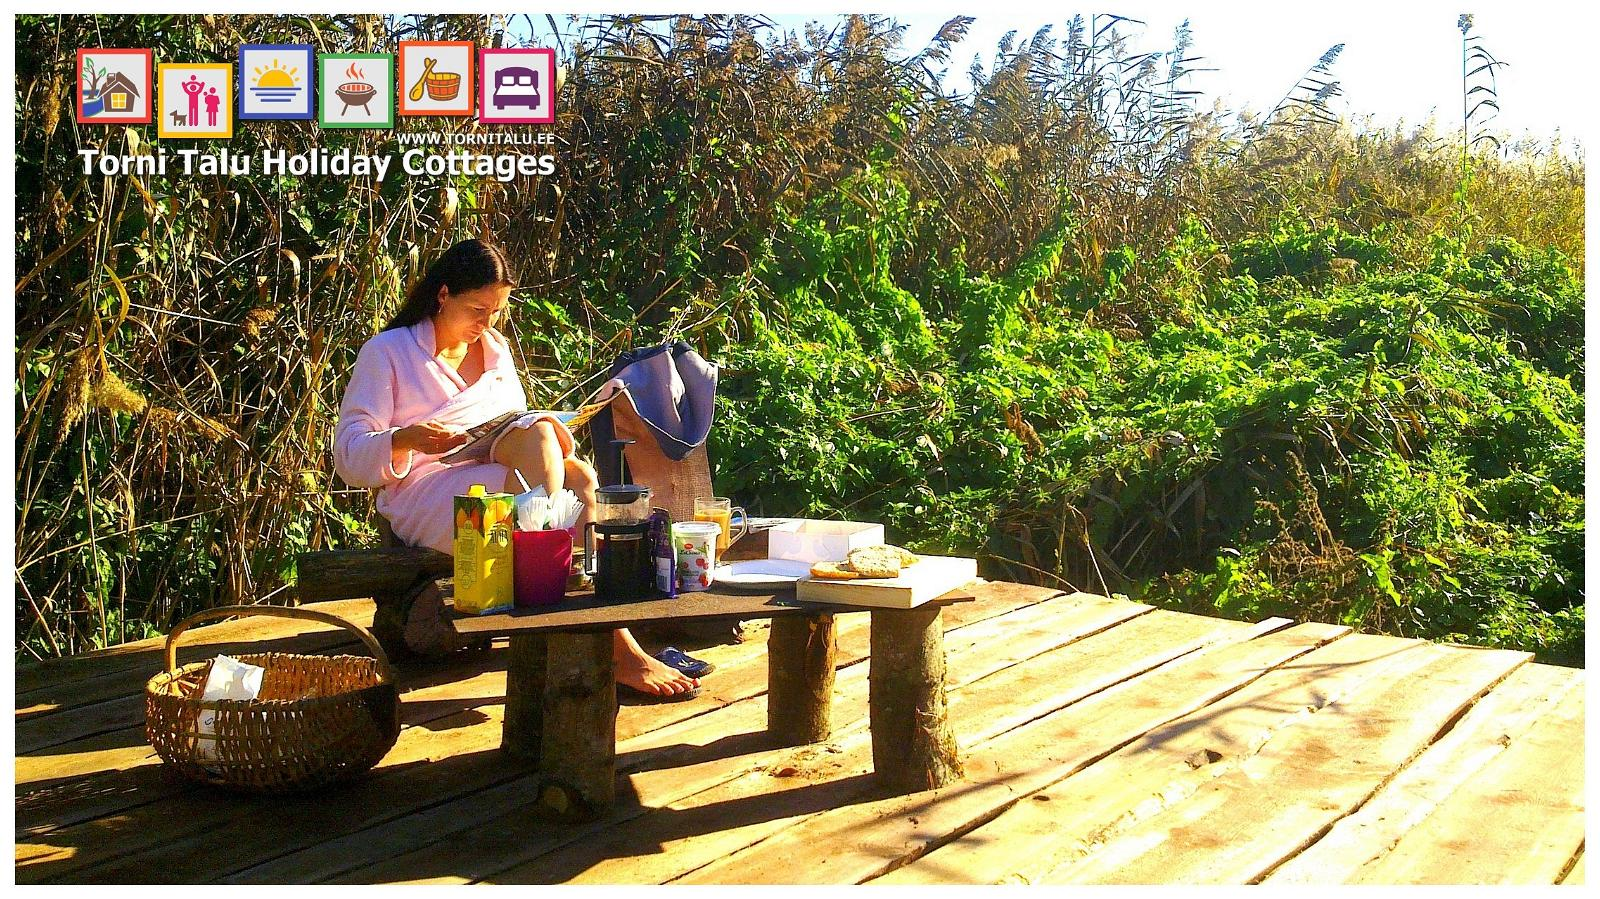 Torni Talu Cottages Sea Side Barbecue And Camping Site